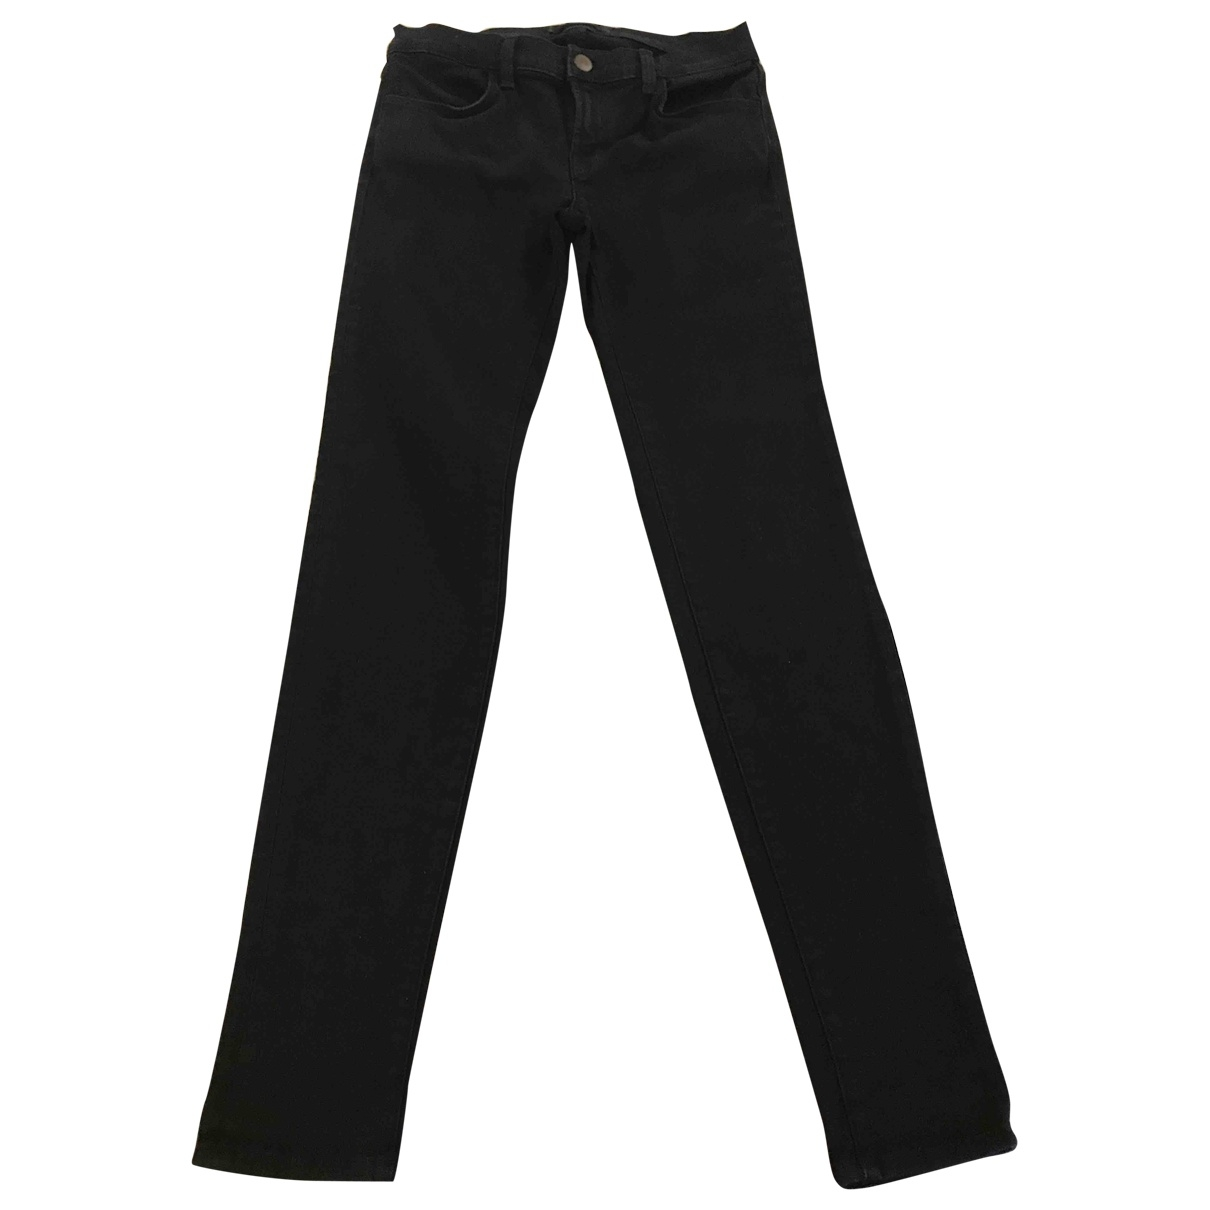 J Brand \N Black Denim - Jeans Trousers for Women One Size FR